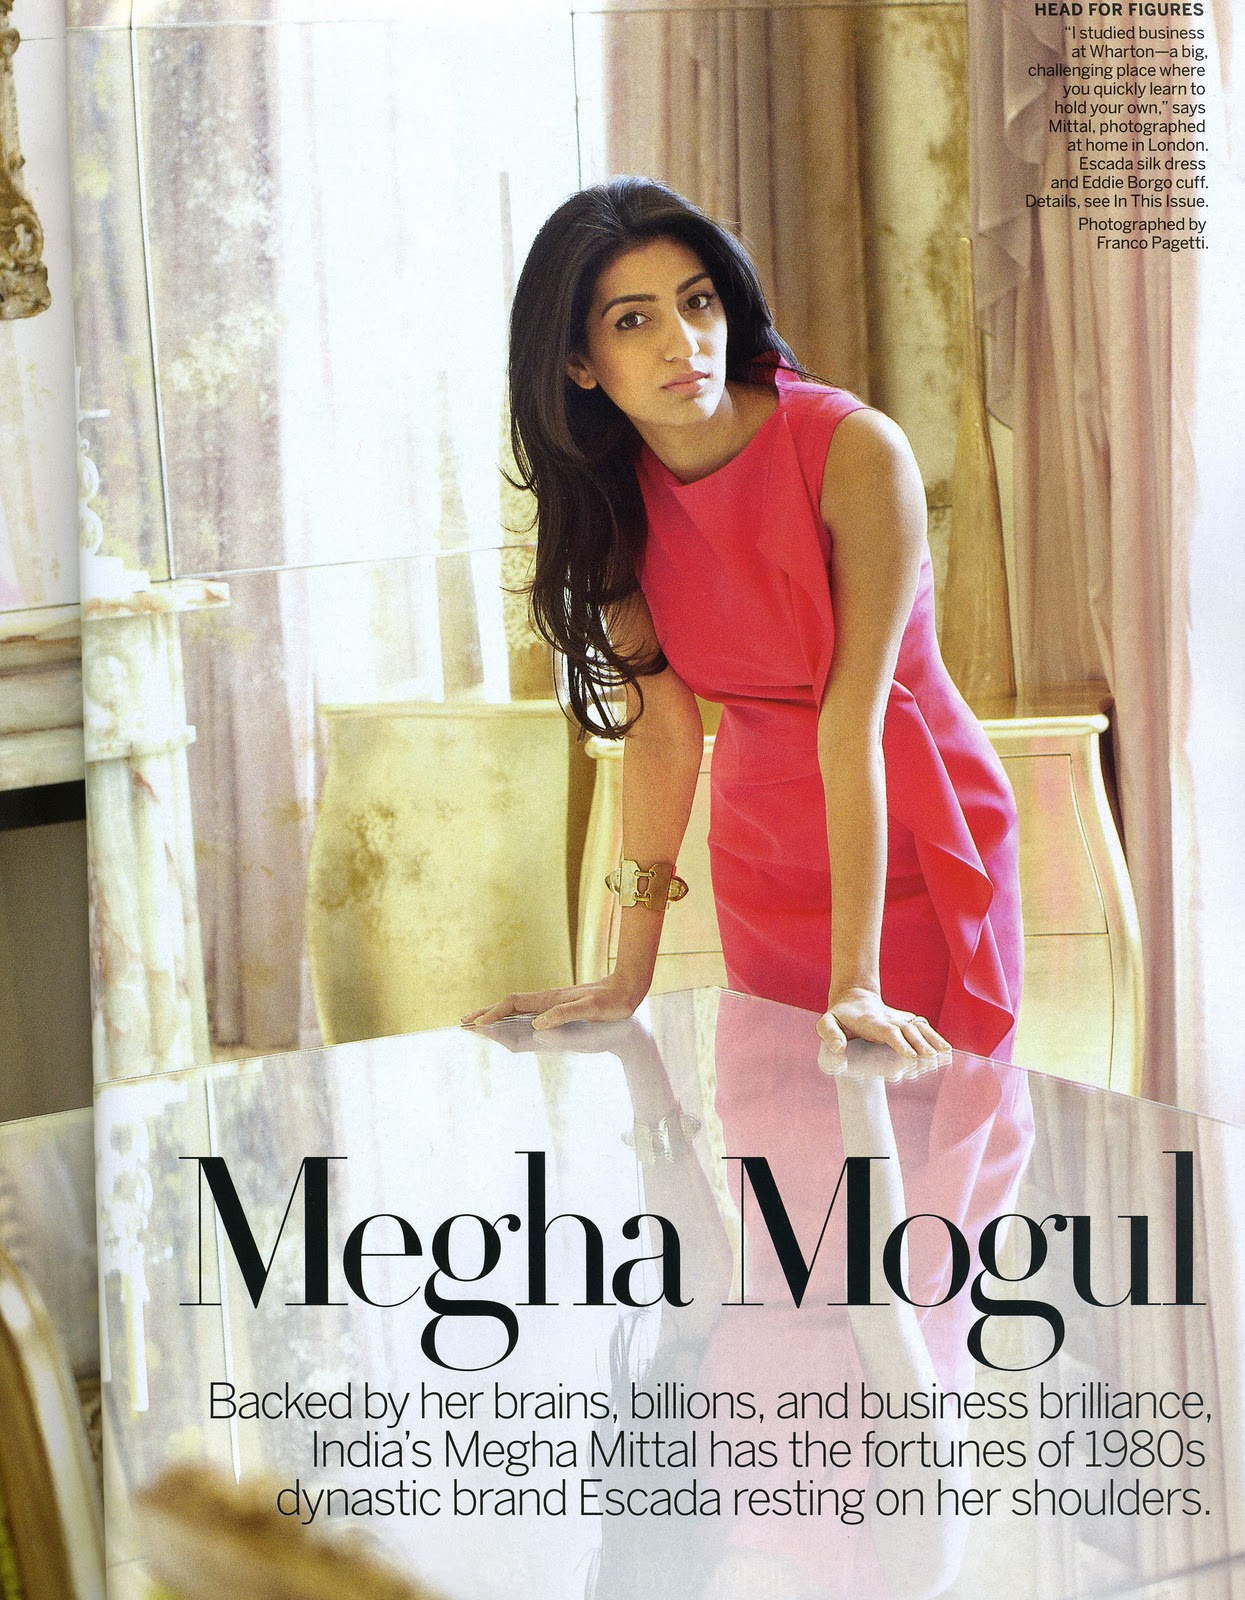 Megha Mittal Puts The Midas Touch On Escada